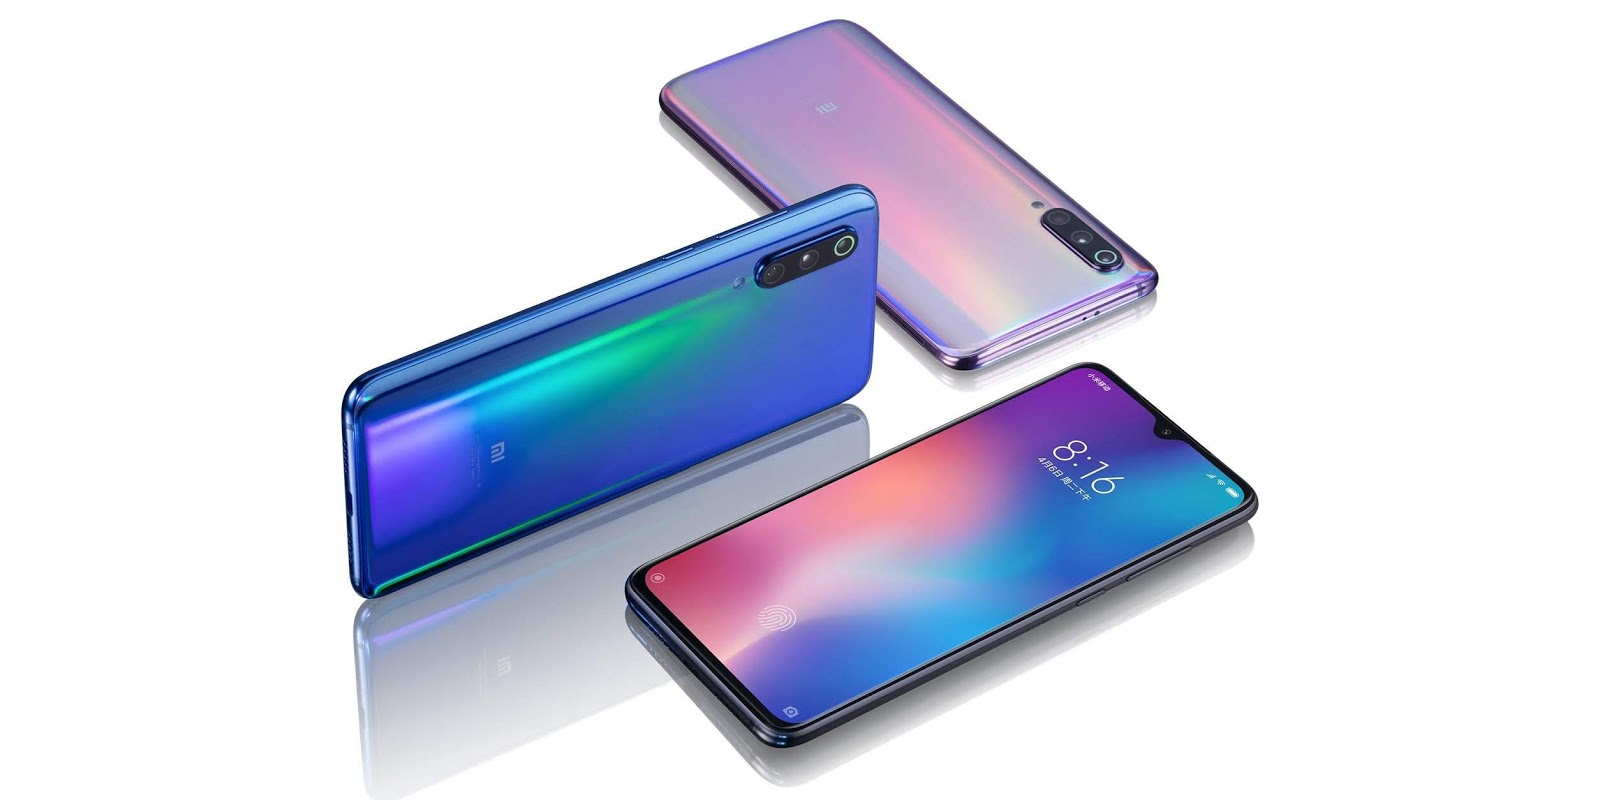 Xiaomi Mi 9 will be available in Europe next week